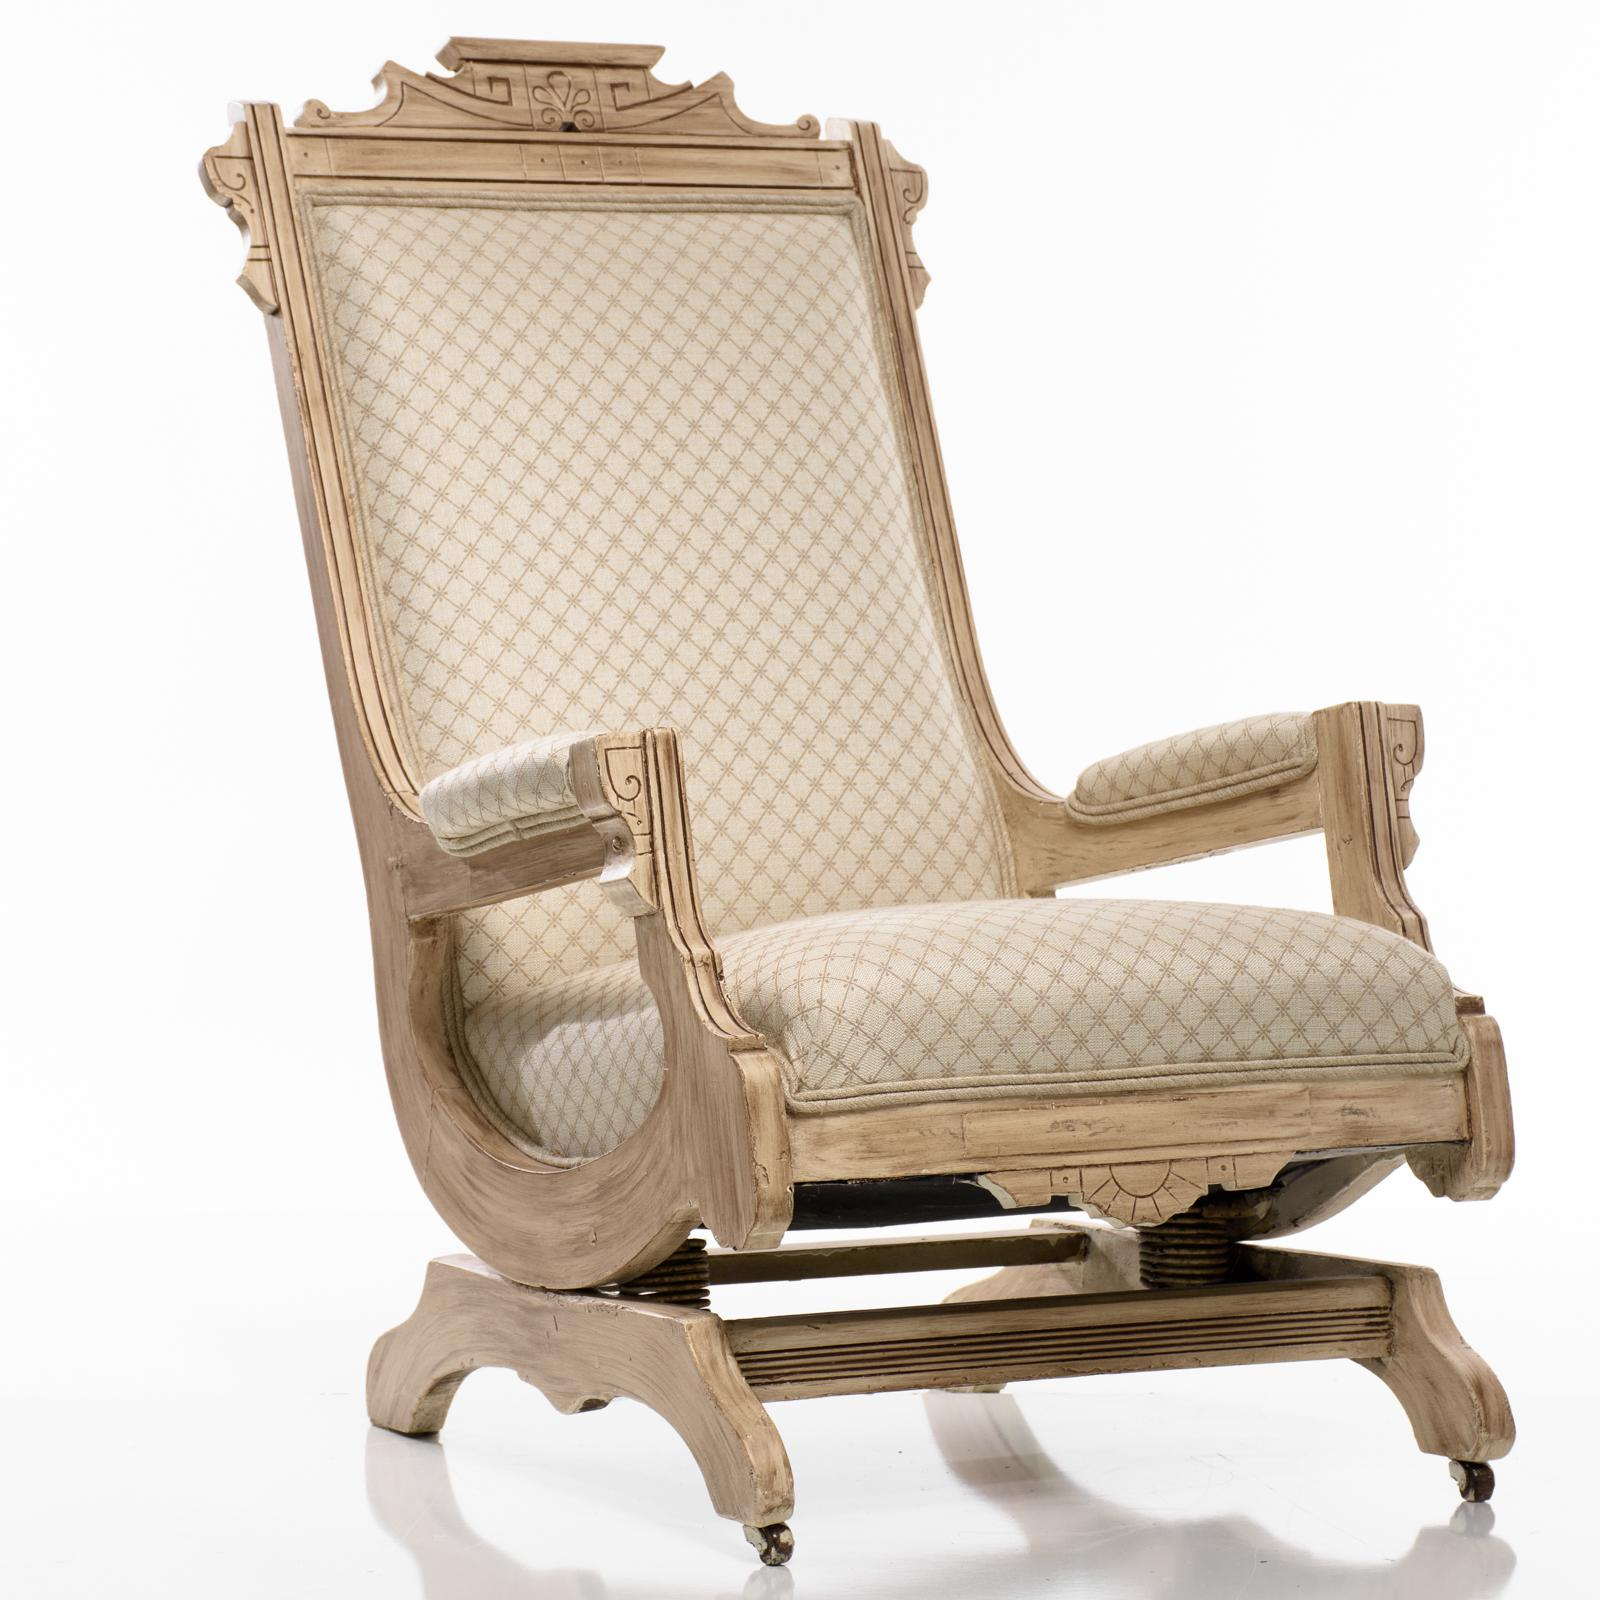 Attirant Antique Platform Rocking Chair Beautifully Detailed Wood. The Chairu0027s Frame  Is Very Solid And Has